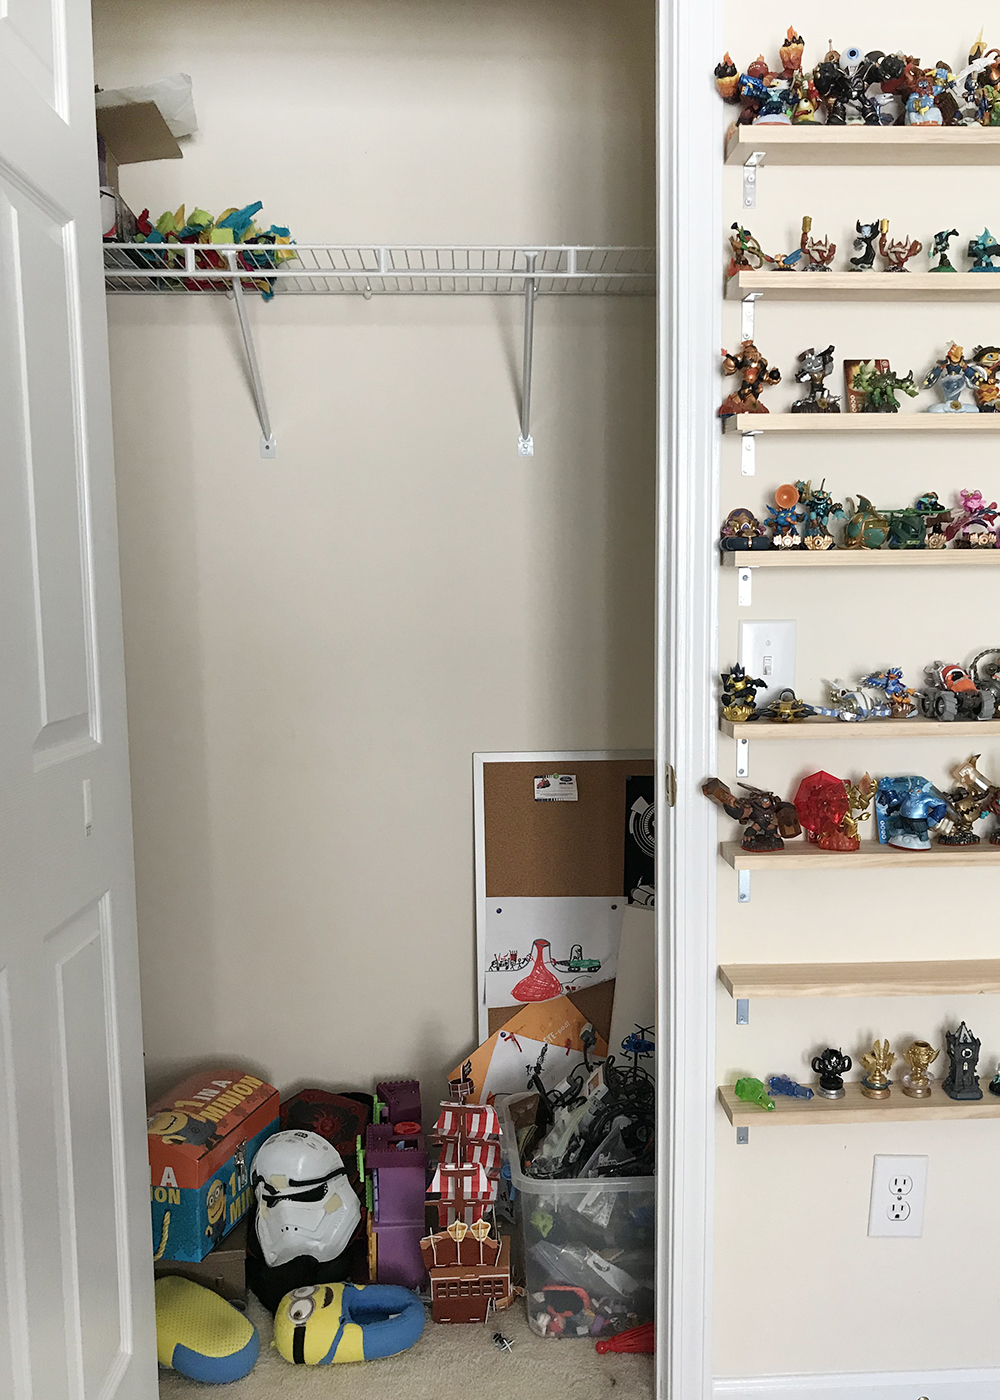 a 10 year old's closet BEFORE organization